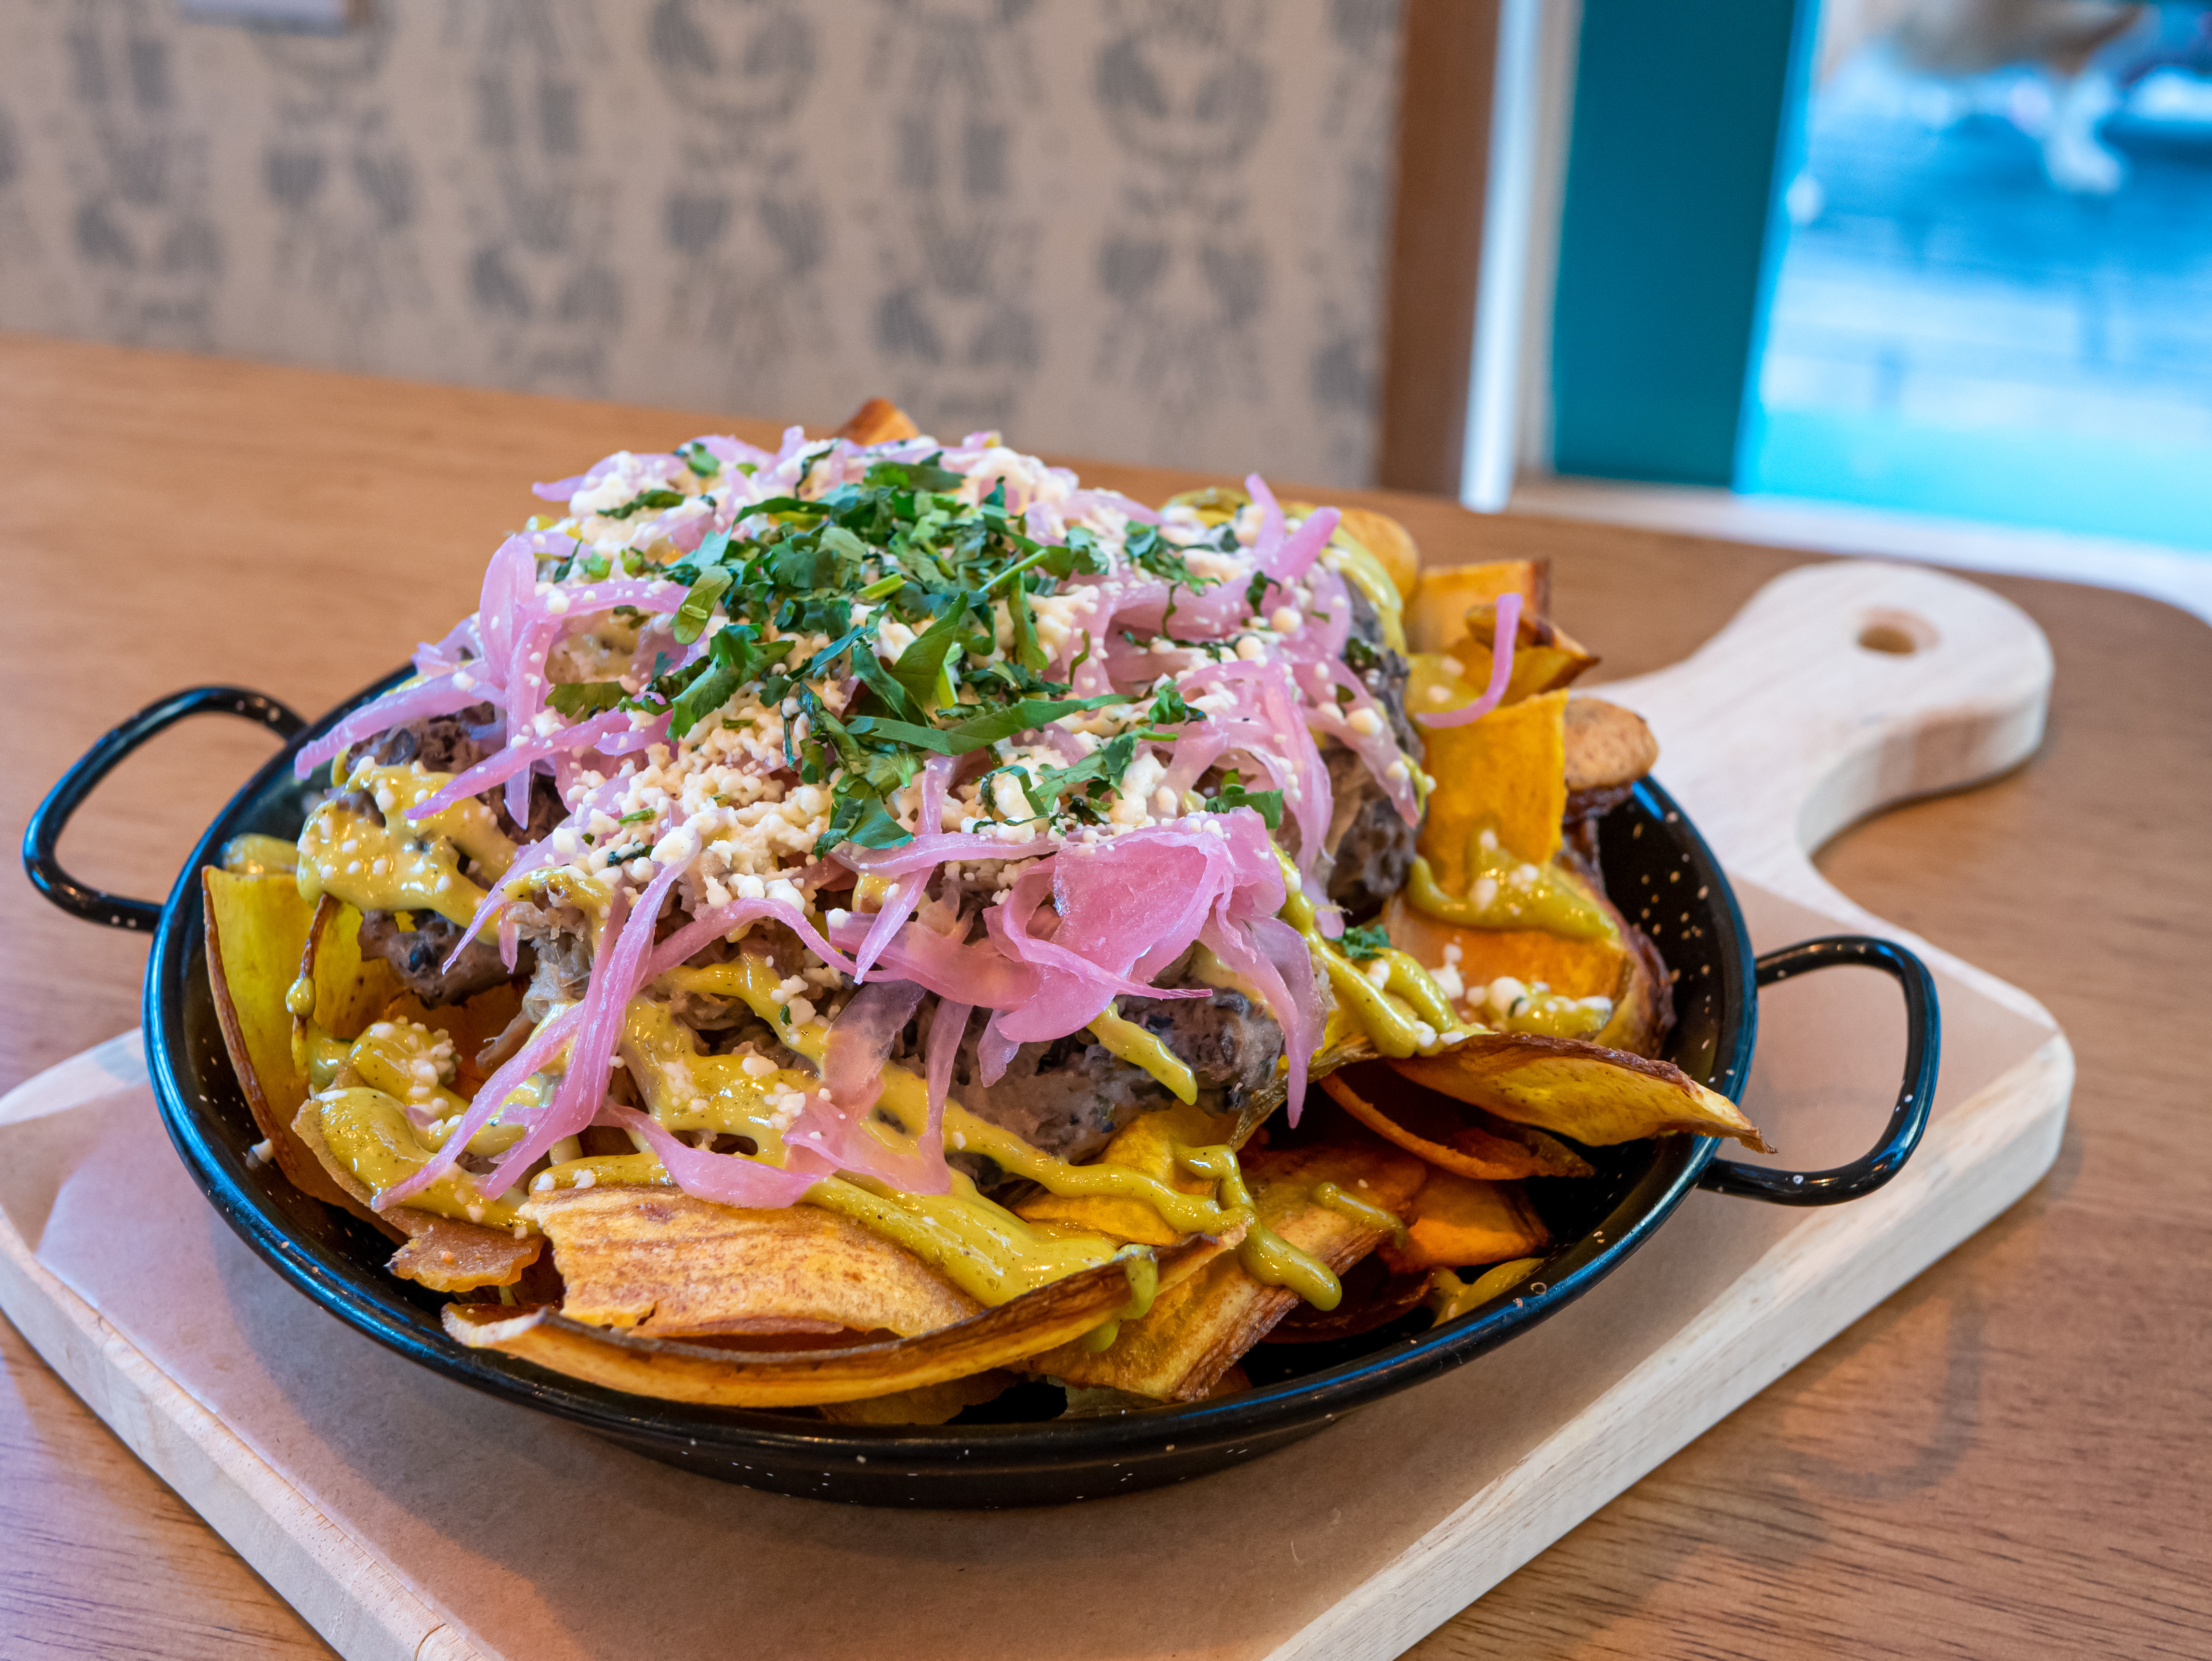 Colada Shop will introduce plantain nachos at its new location in Potomac, Maryland.